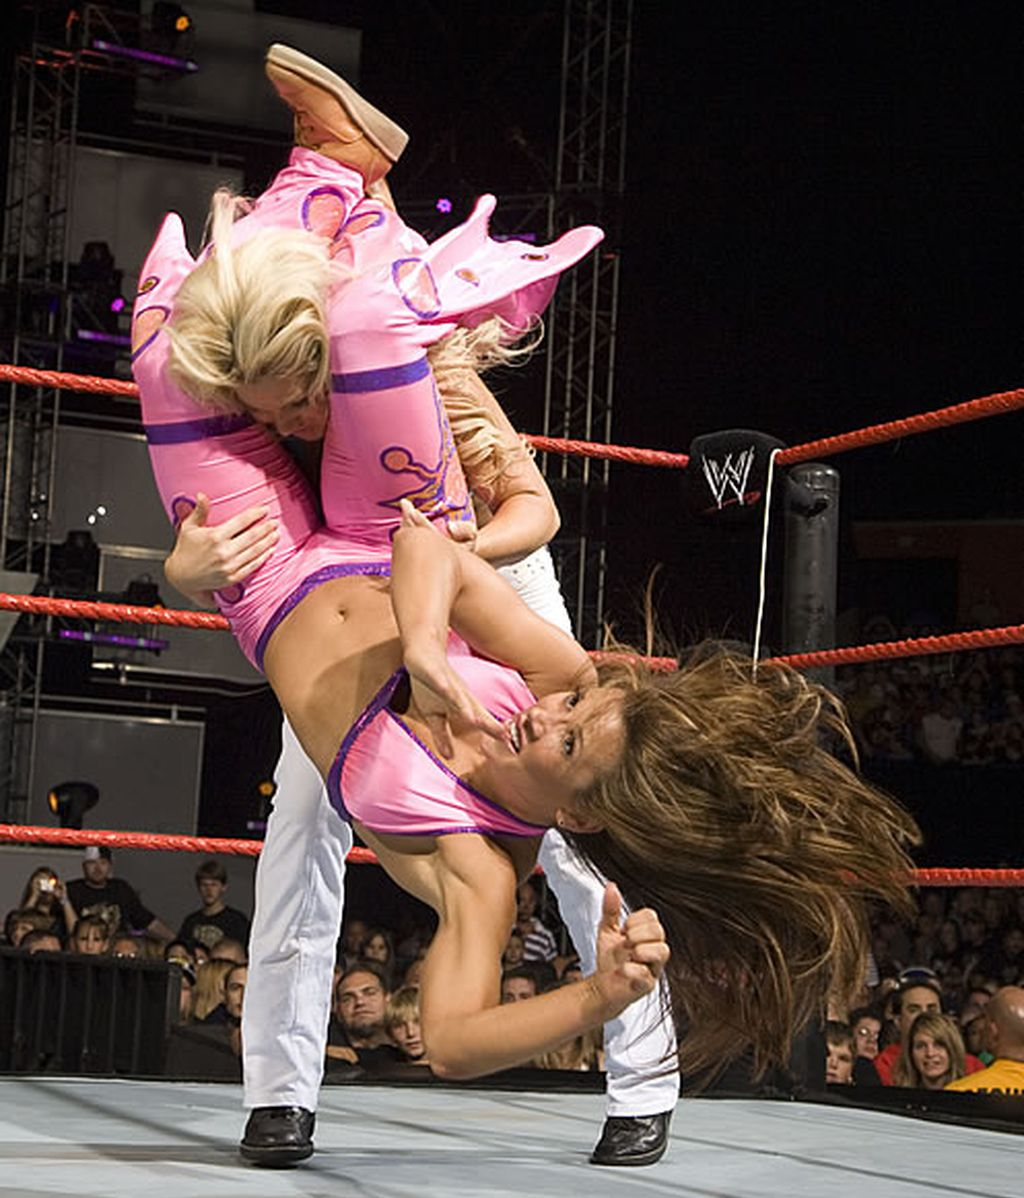 Las divas son espectaculares en el ring